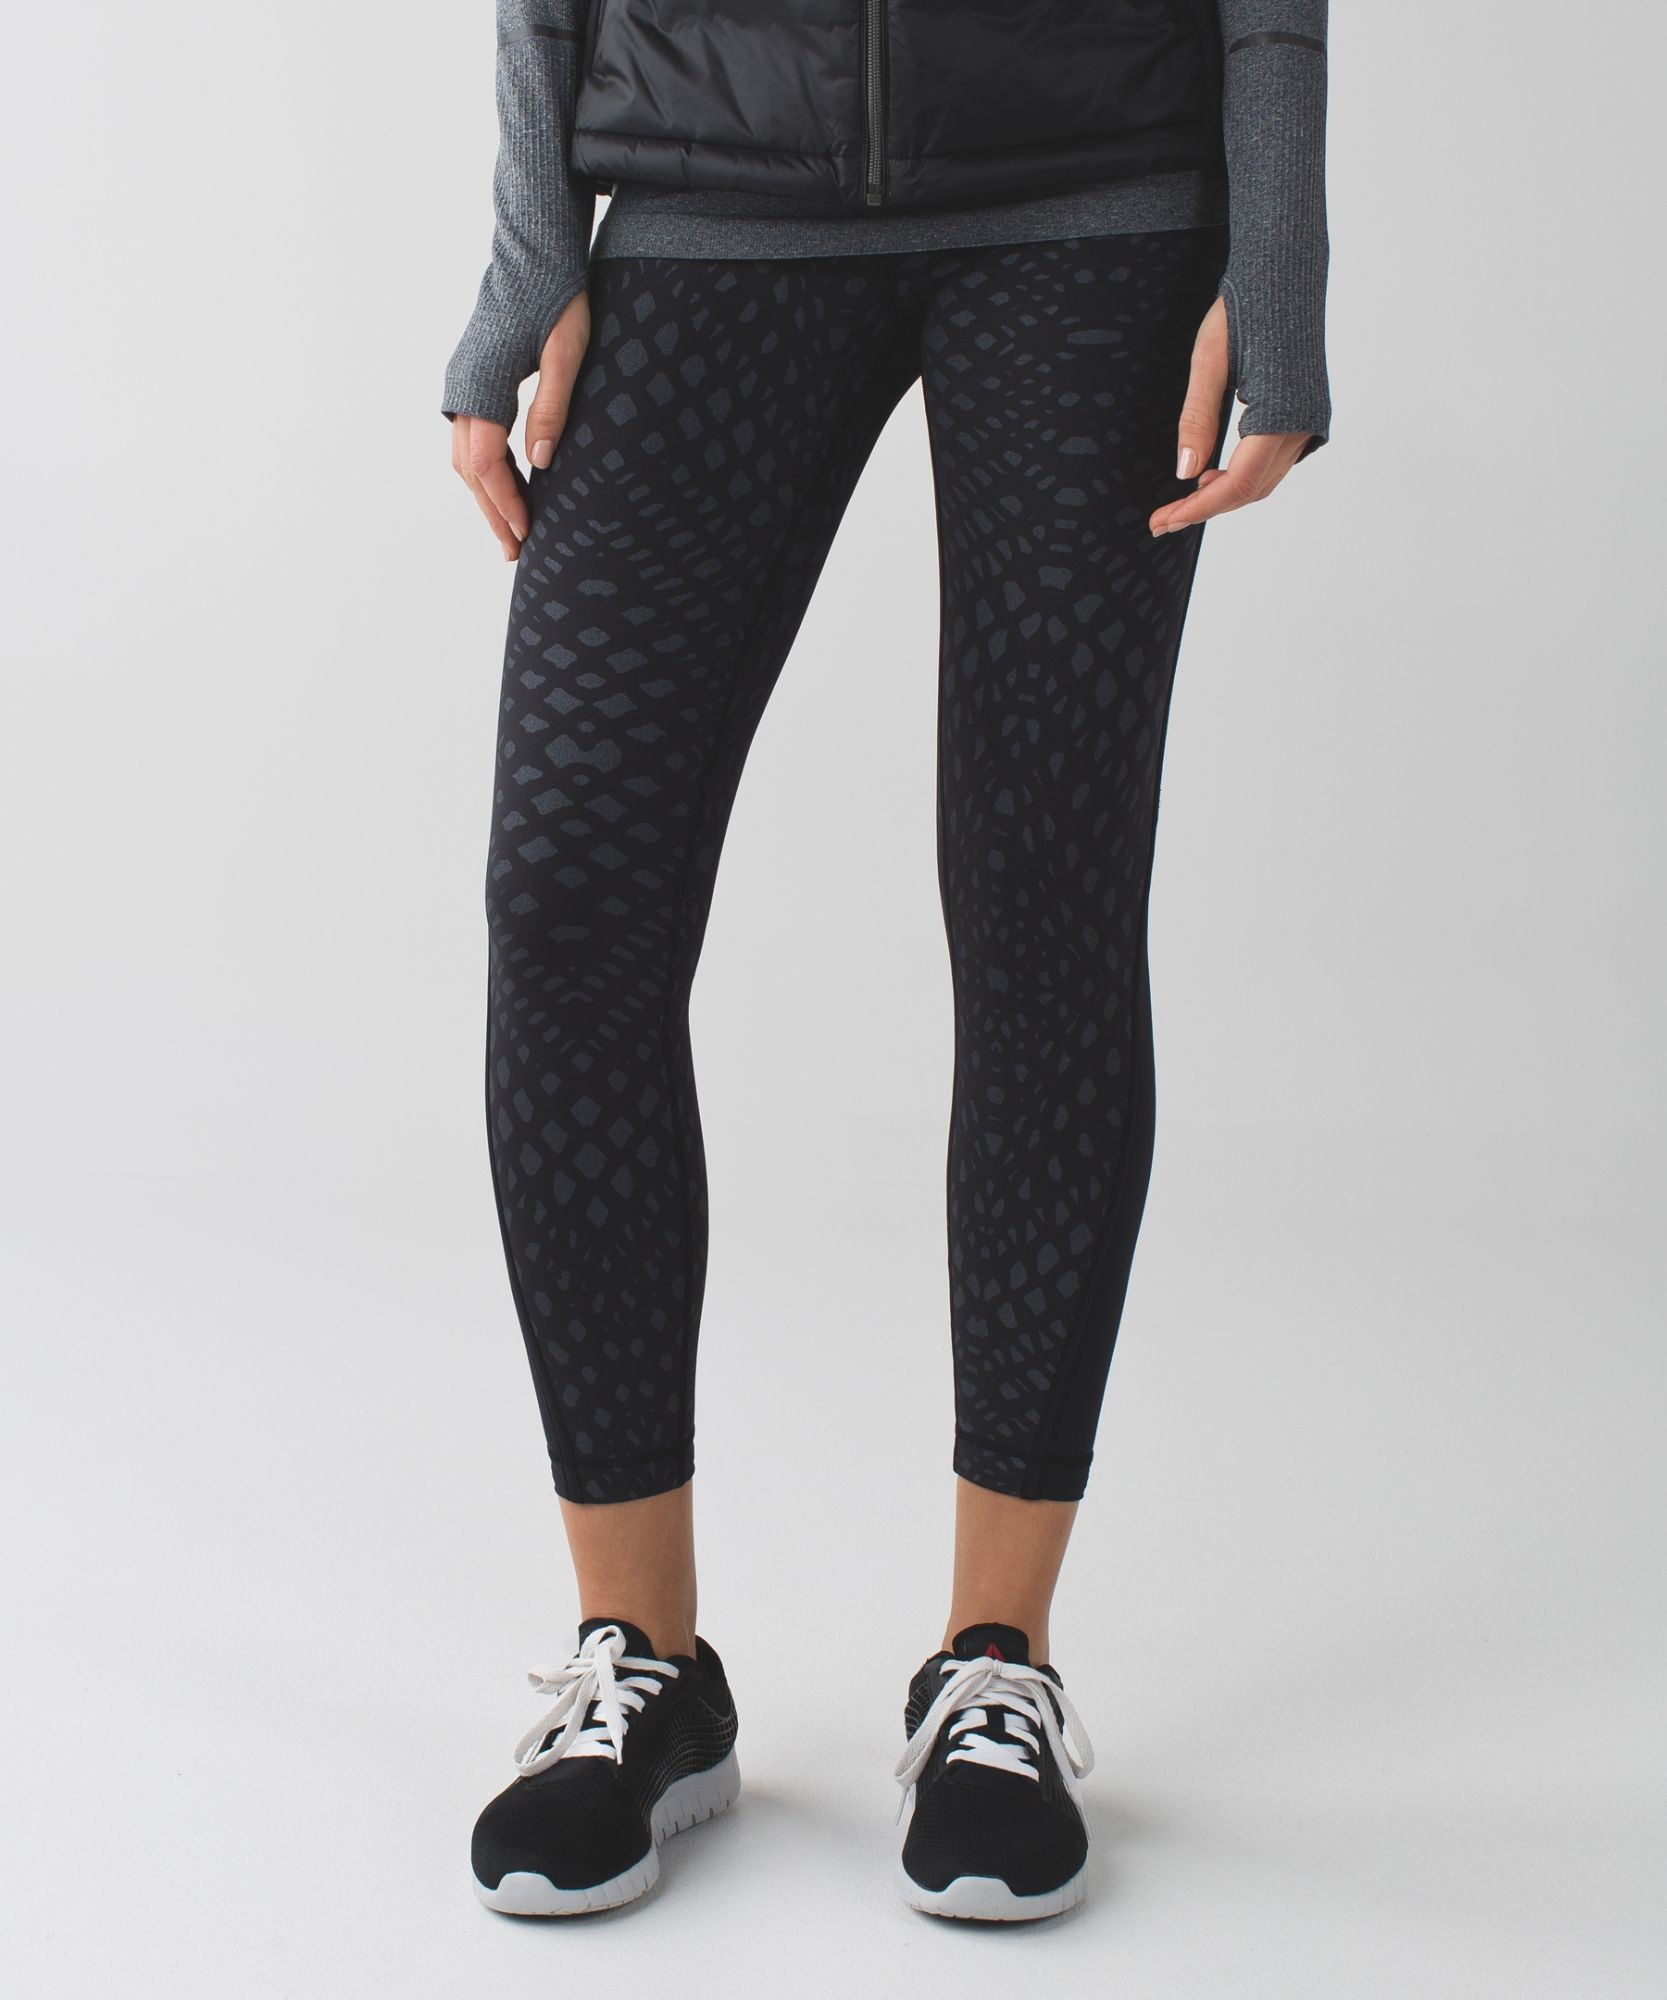 39c5b01f25 Nike Power Epic Lux Compression Running Leggings, Women's, Size: Small,  Black   Products